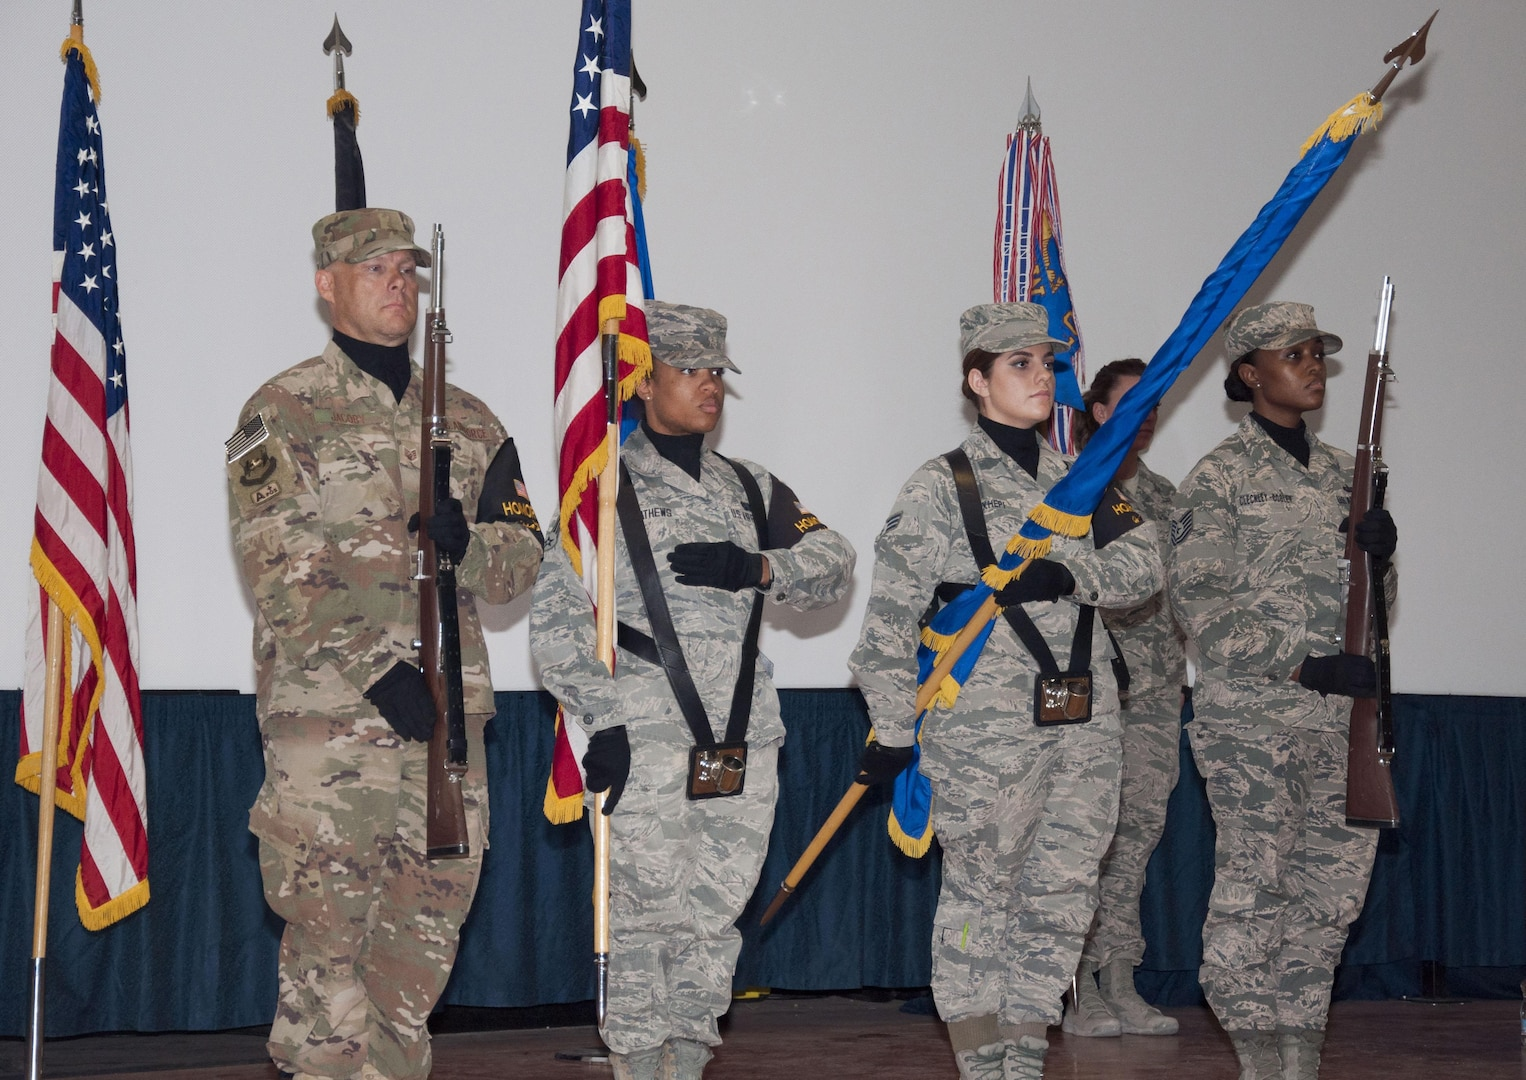 The 386 Air Expeditionary Wing honor guard presents the colors at a change-of-command ceremony Monday, June 5, 2017, at the base theater at an undisclosed location in Southwest Asia.. The honor guard performs at about a fifty events per six-month rotation.